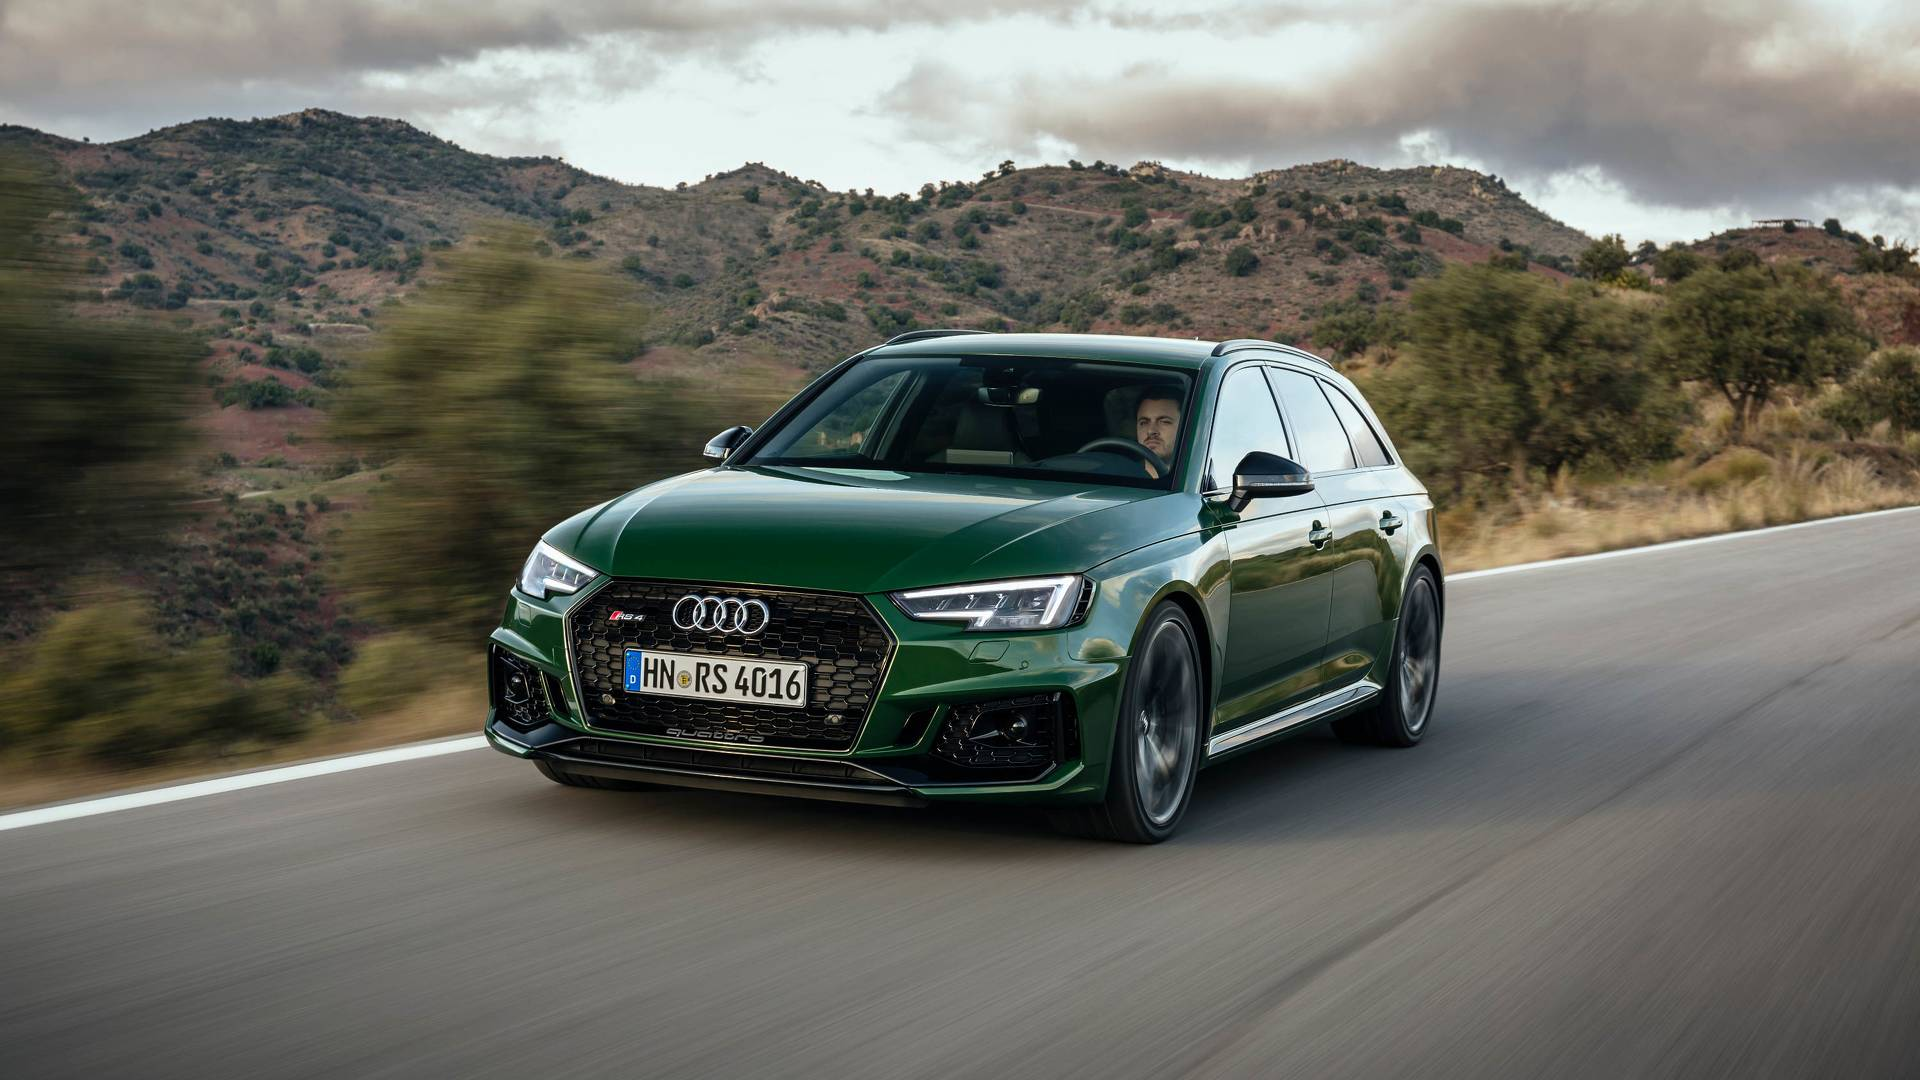 Audi News and Reviews